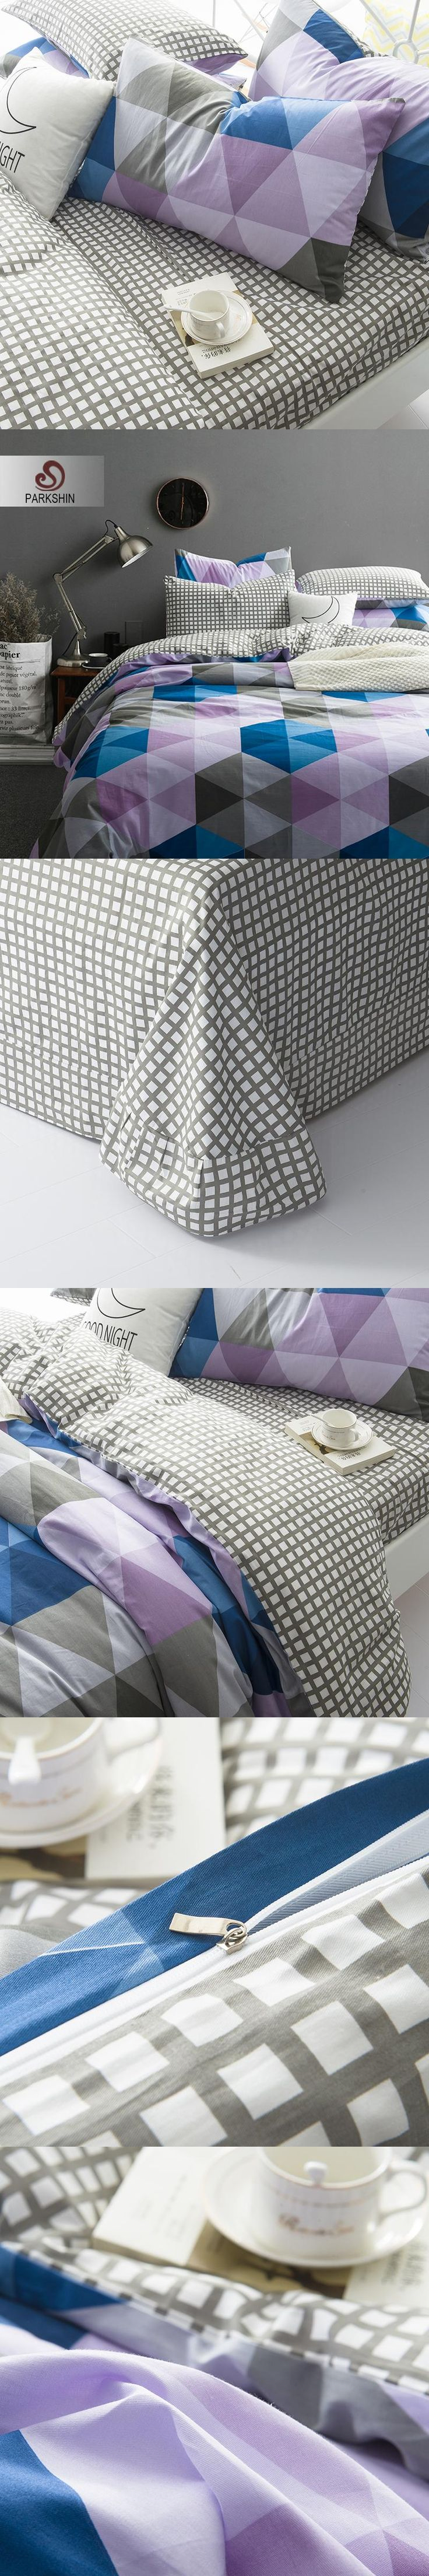 parkshin nordic style bedding sets 100 cotton duvet cover set triangle bed sheet bed linen